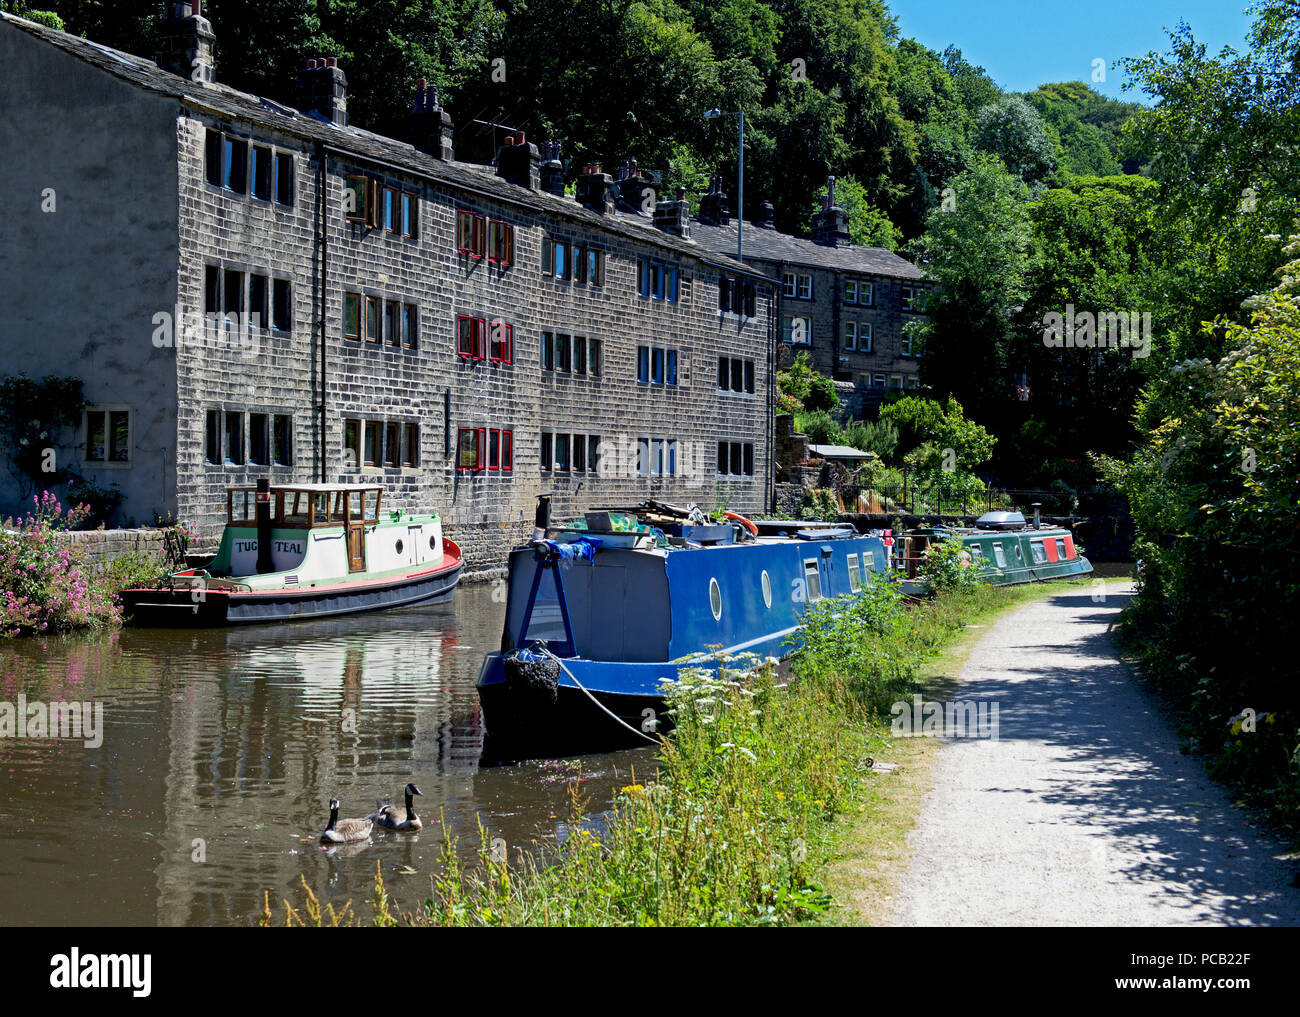 Narrowboats on the Rochdale Canal, Hebden Bridge, West Yorkshire, England UK - Stock Image